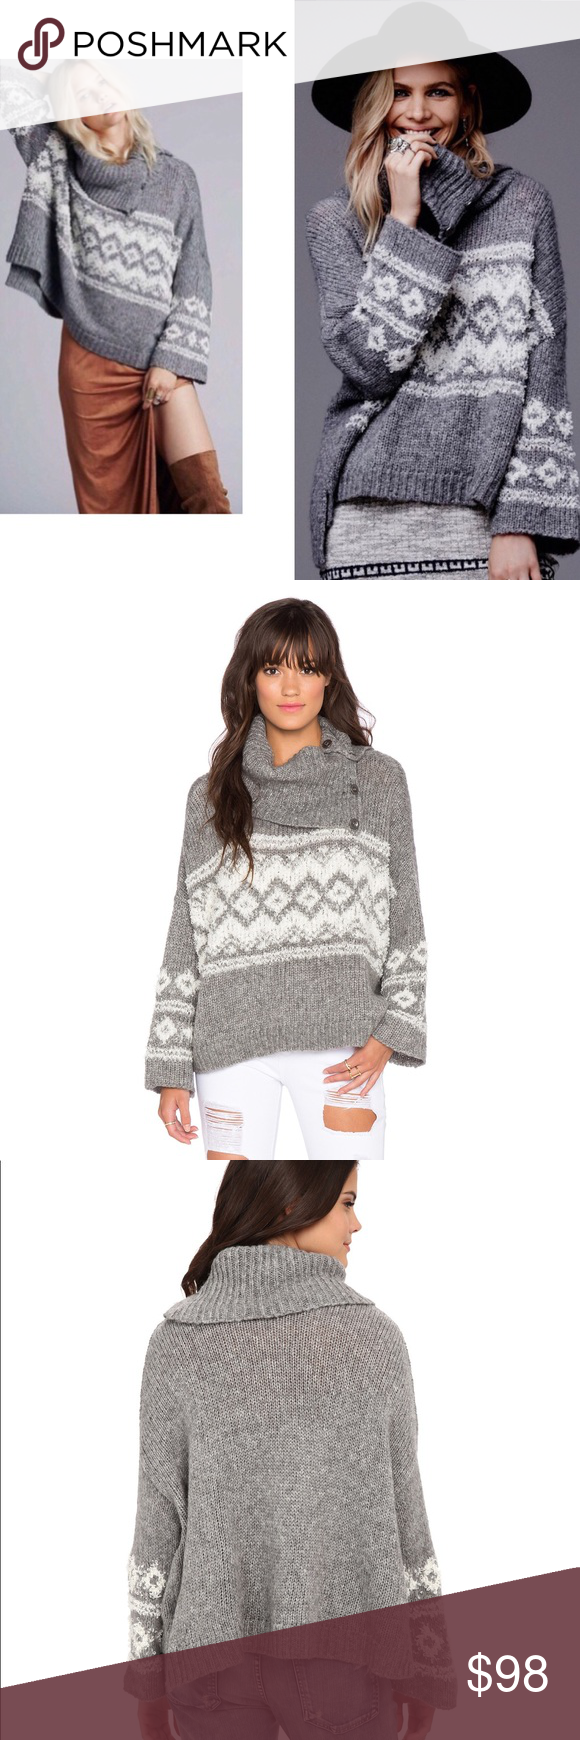 263af41b5 Free People Grey Fair Isle Split Neck Sweater in 2018